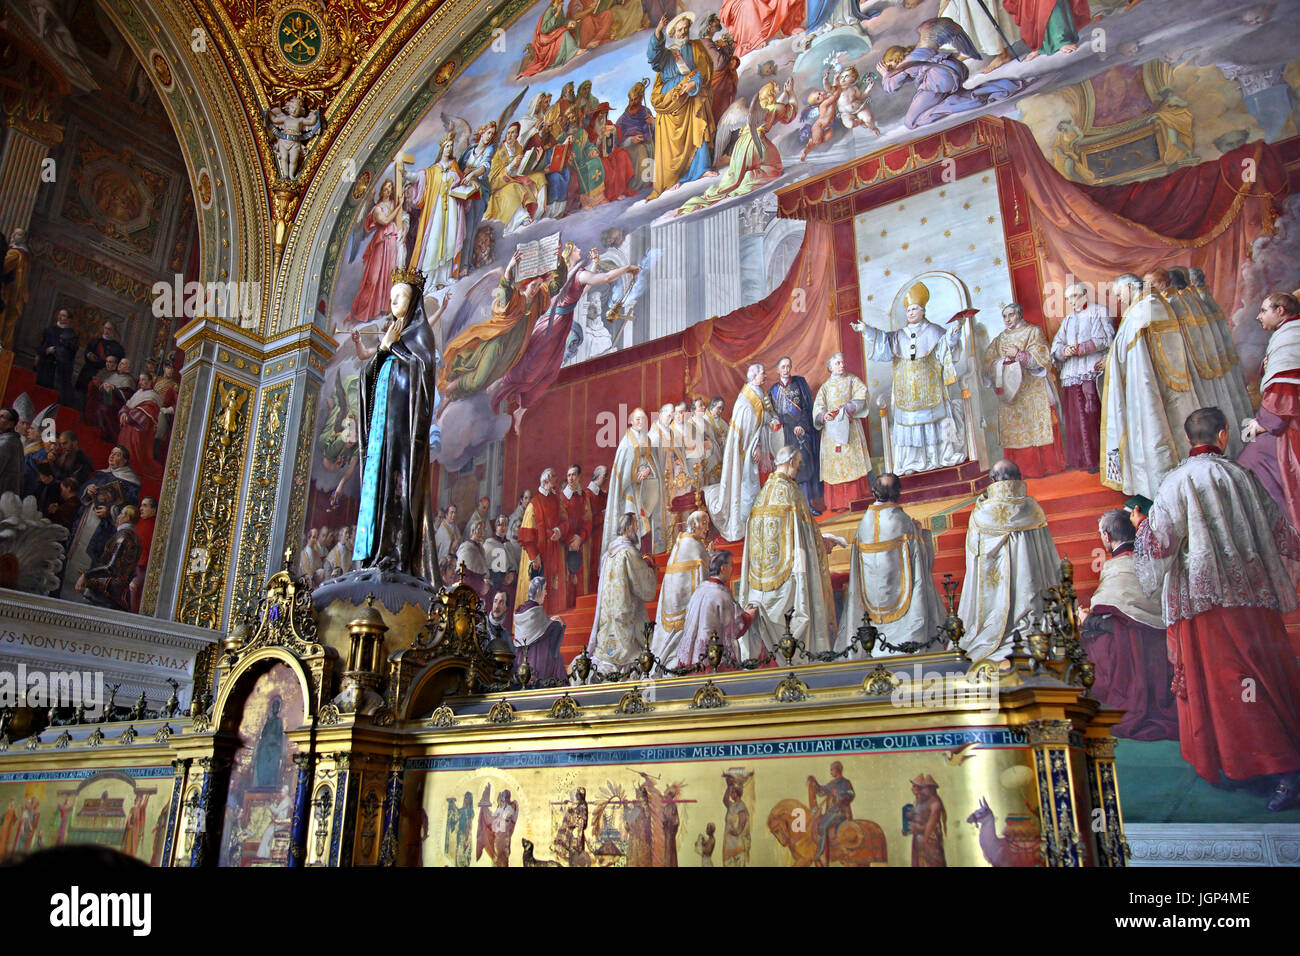 In the 'Sala dell'Immacolata' ('Room of the Immaculate Conception'), Vatican Museums, Vatican - Stock Image